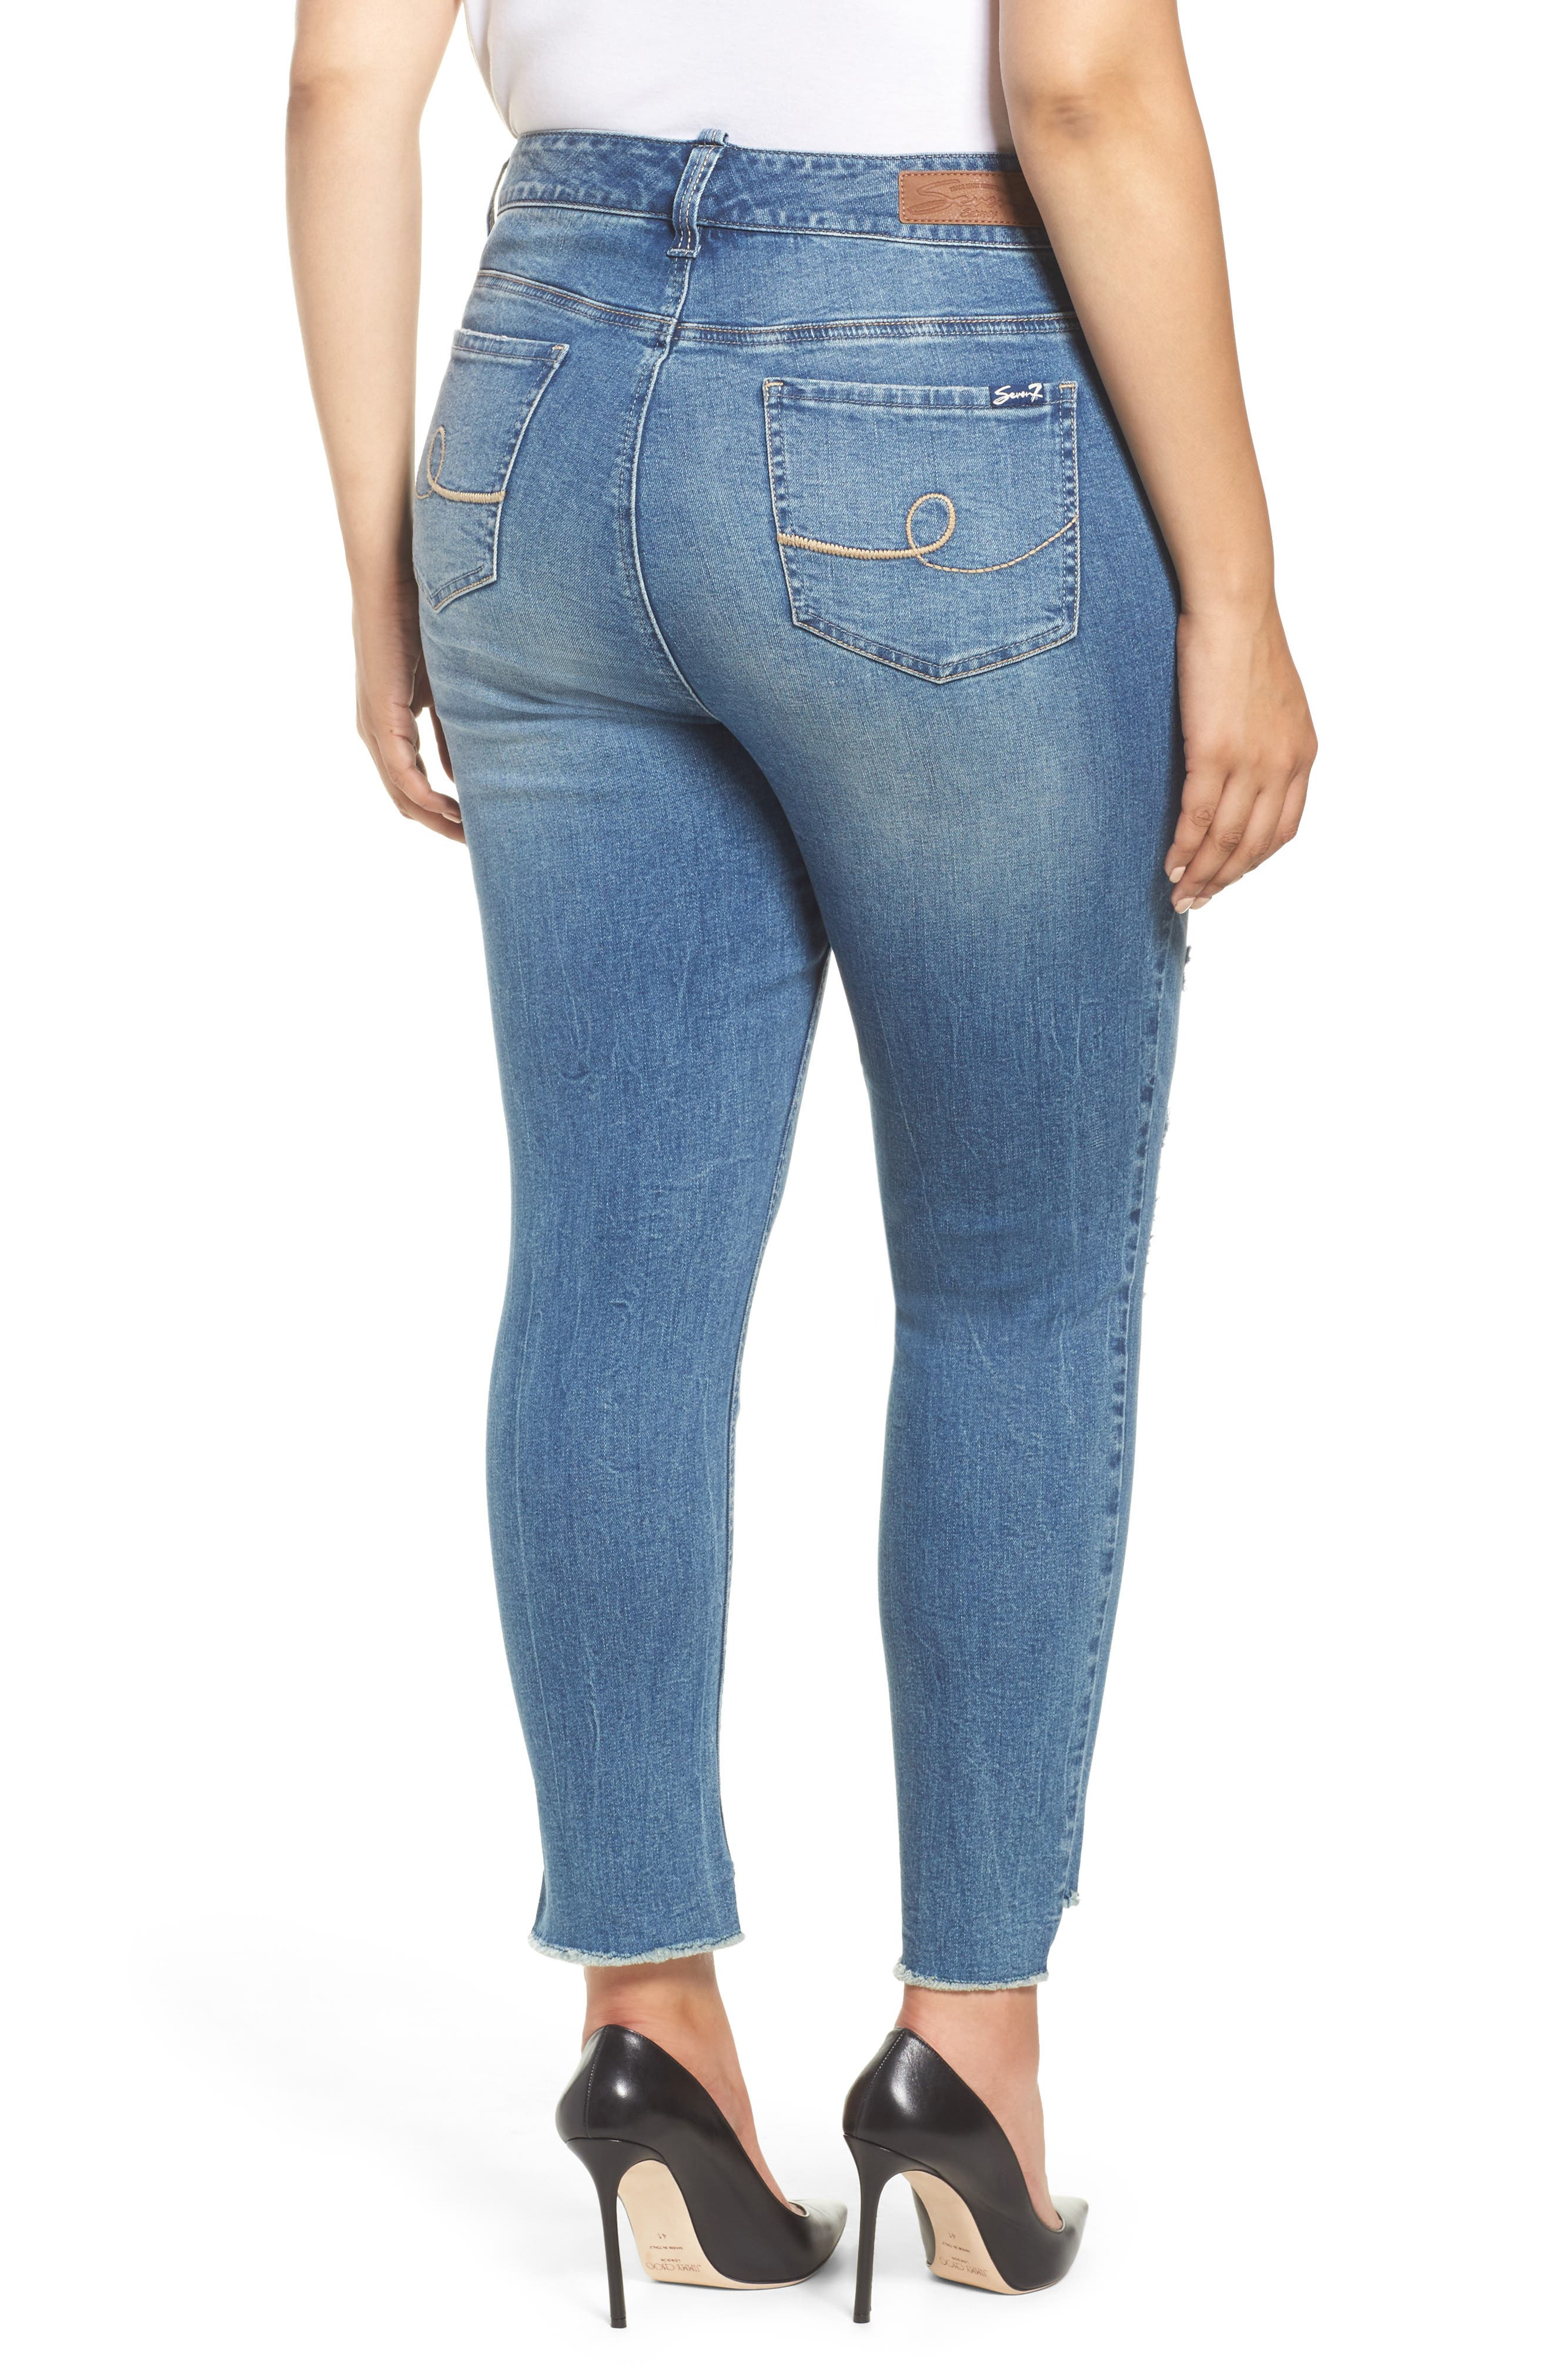 Alternate Image 2  - Seven7 High/Low Ankle Skinny Jeans (Molokai) (Plus Size)